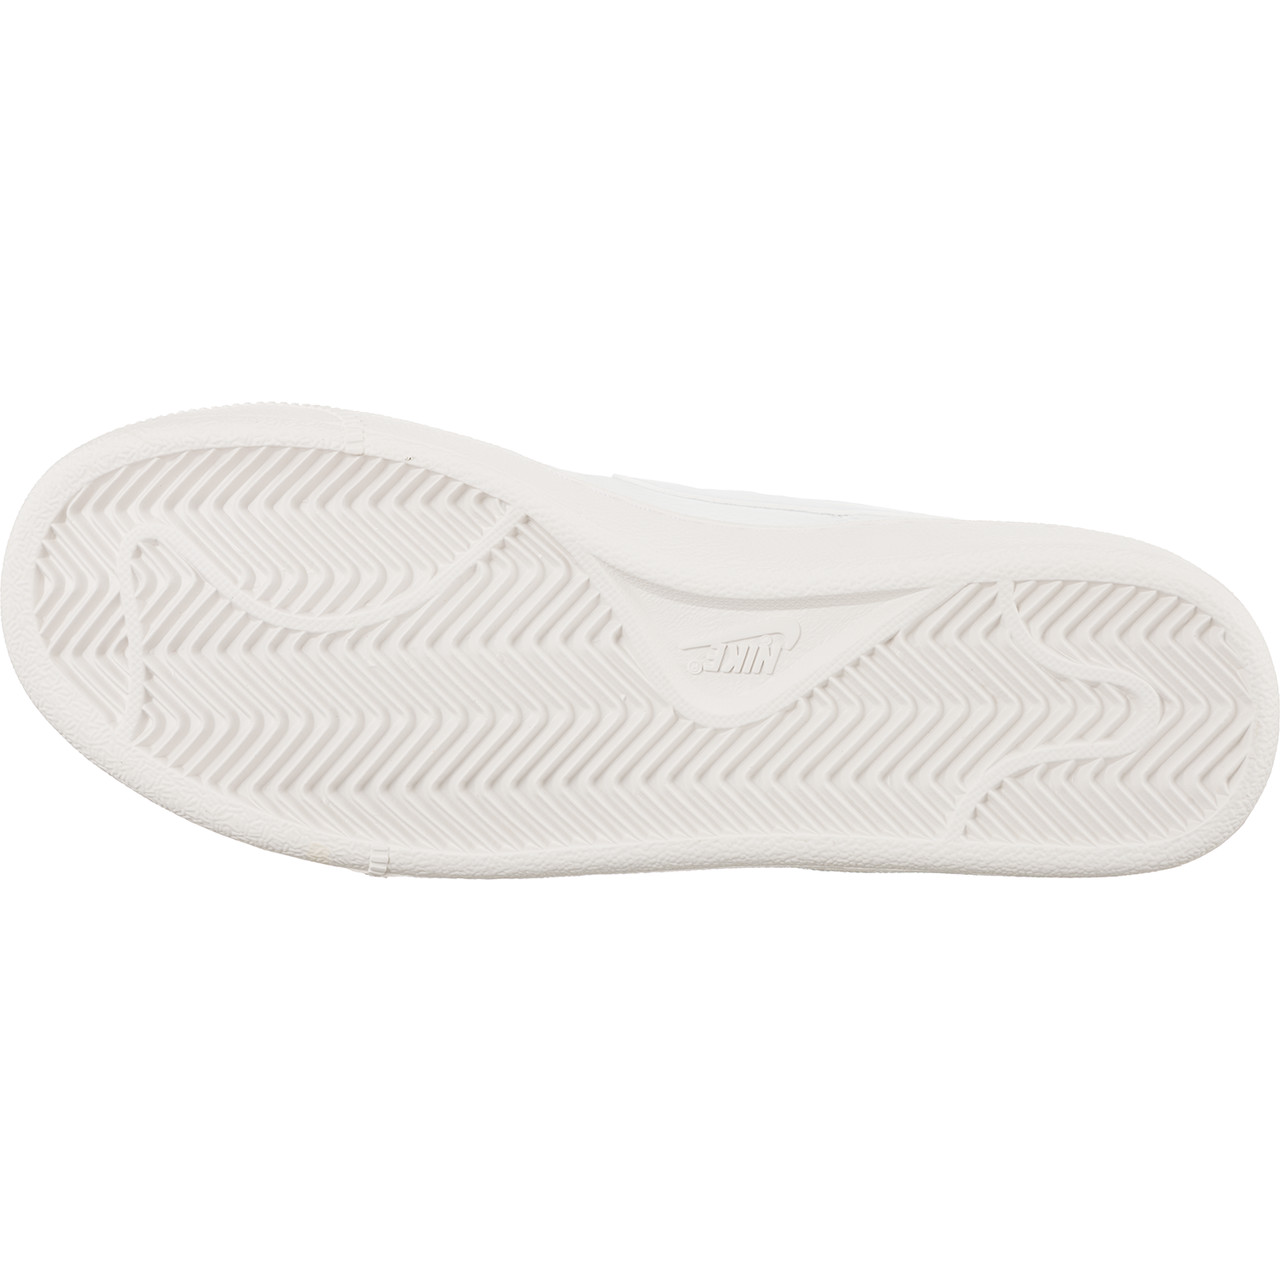 Buty Nike Court Royale GS 102 eastend.pl